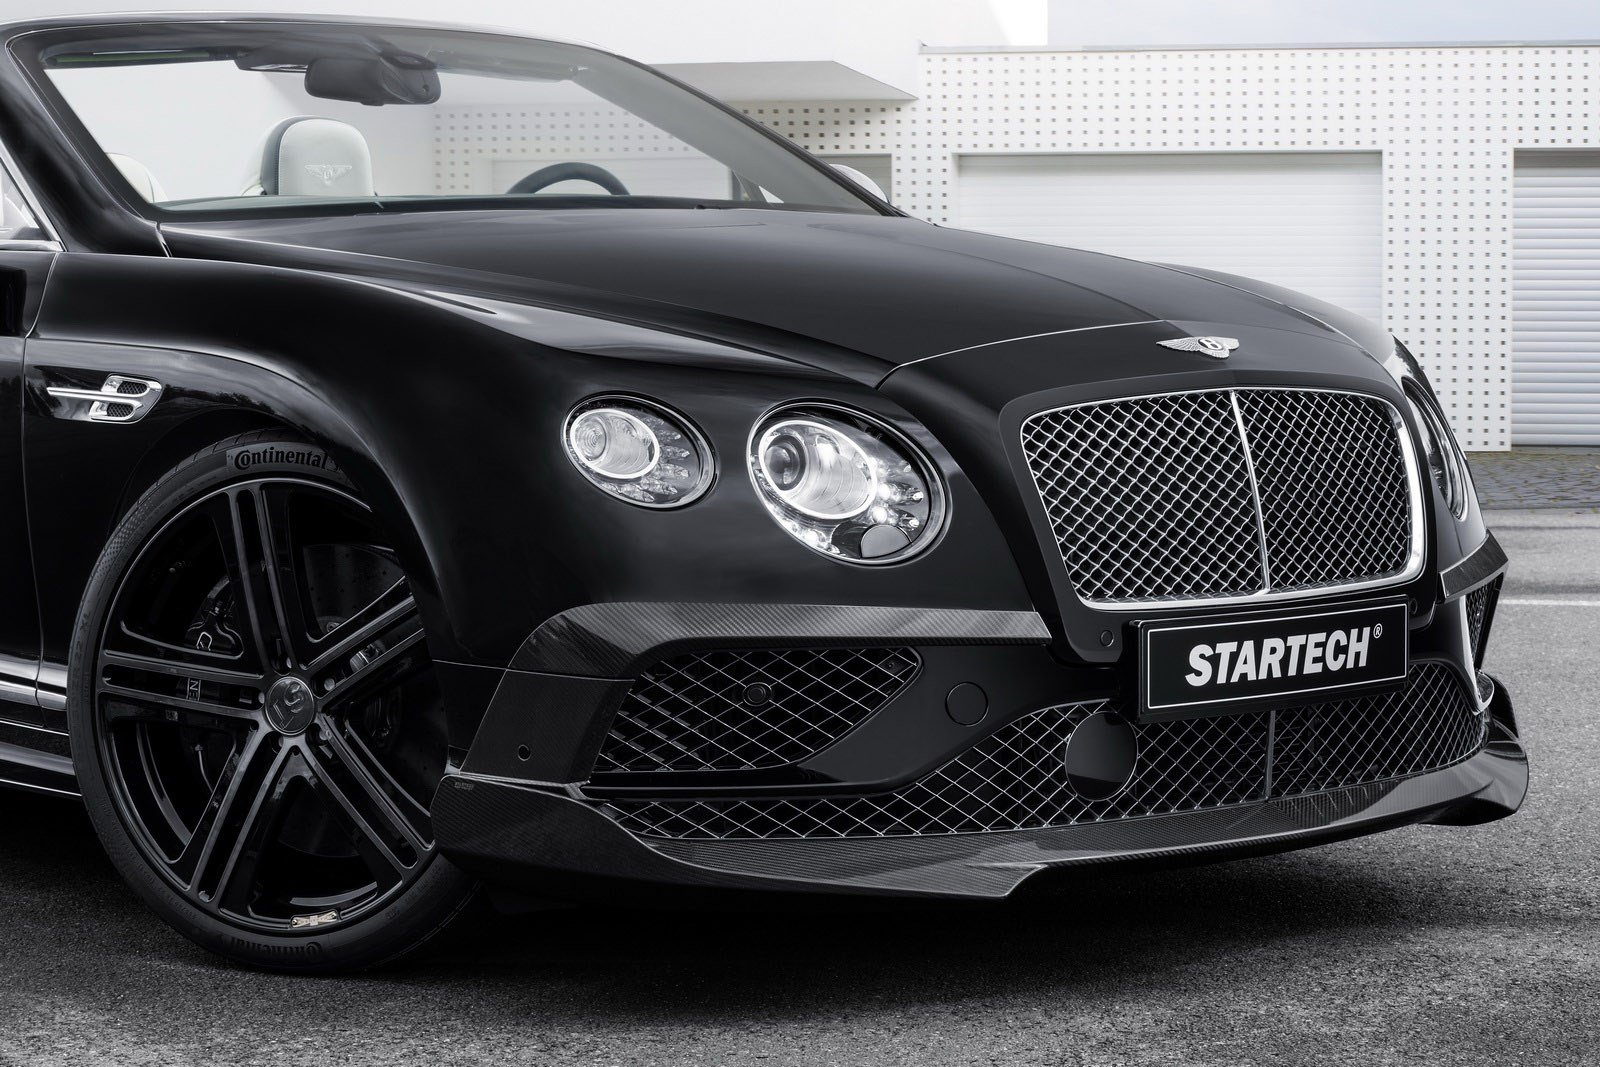 New Startech Displays Sportier Bentley Continental Cabriolet On This Month